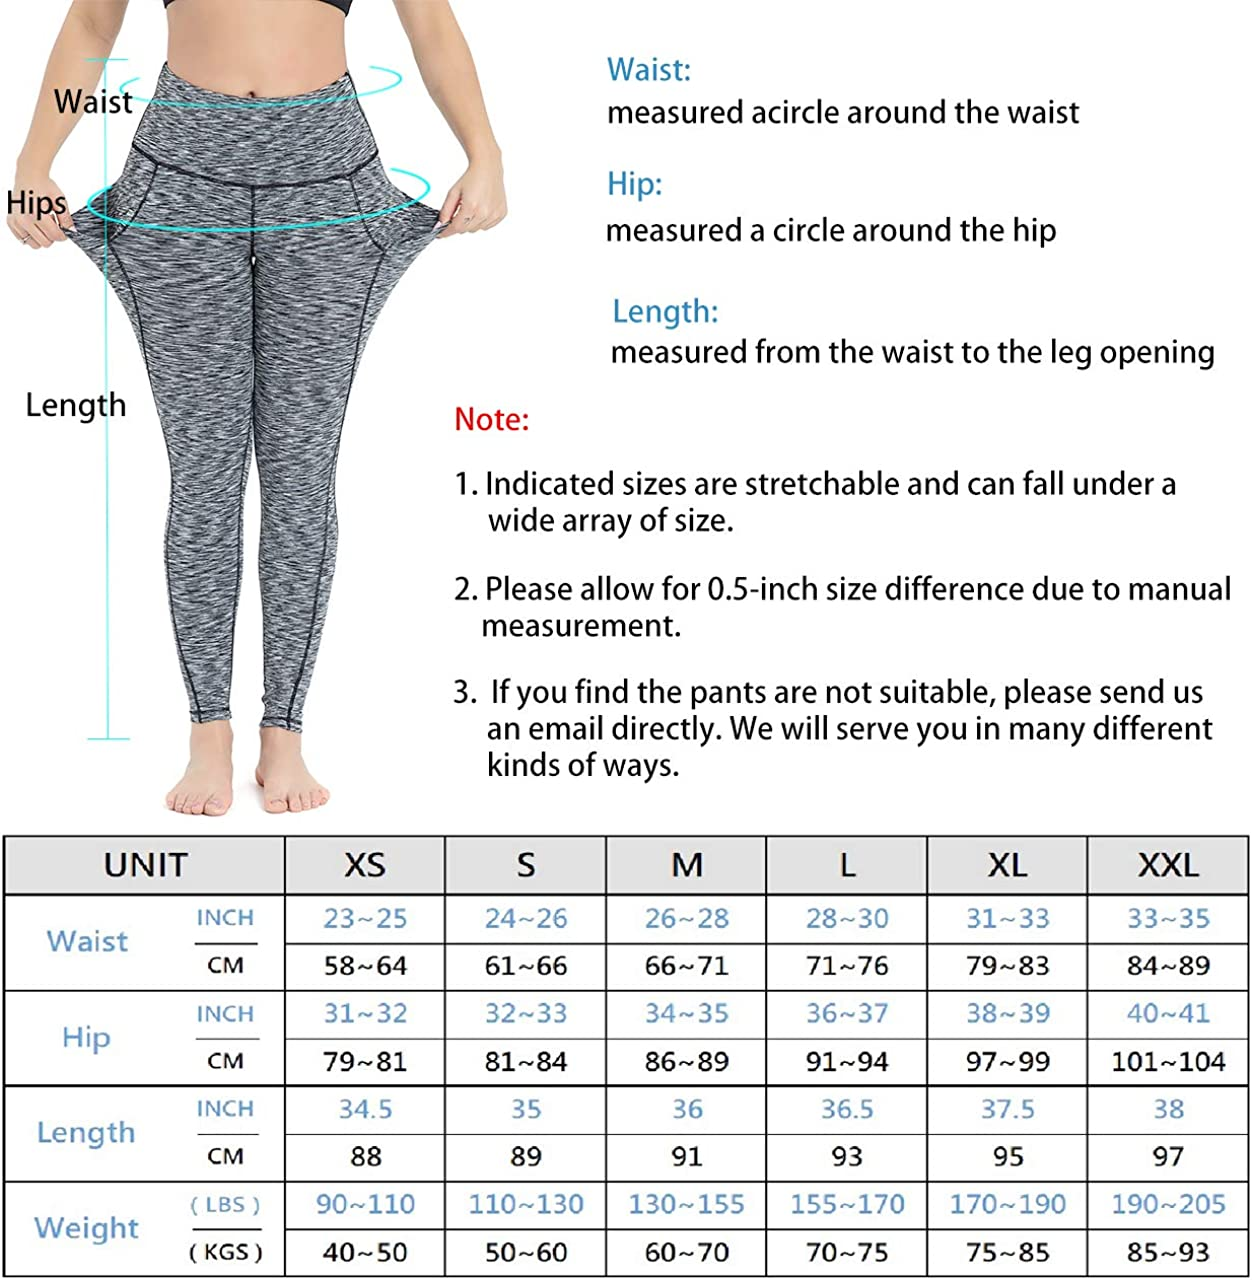 HIGHDAYS Yoga Pants for Women with Pocket High Waist Non See Through Yoga Leggings for Workout Athletic Runnig Cycling